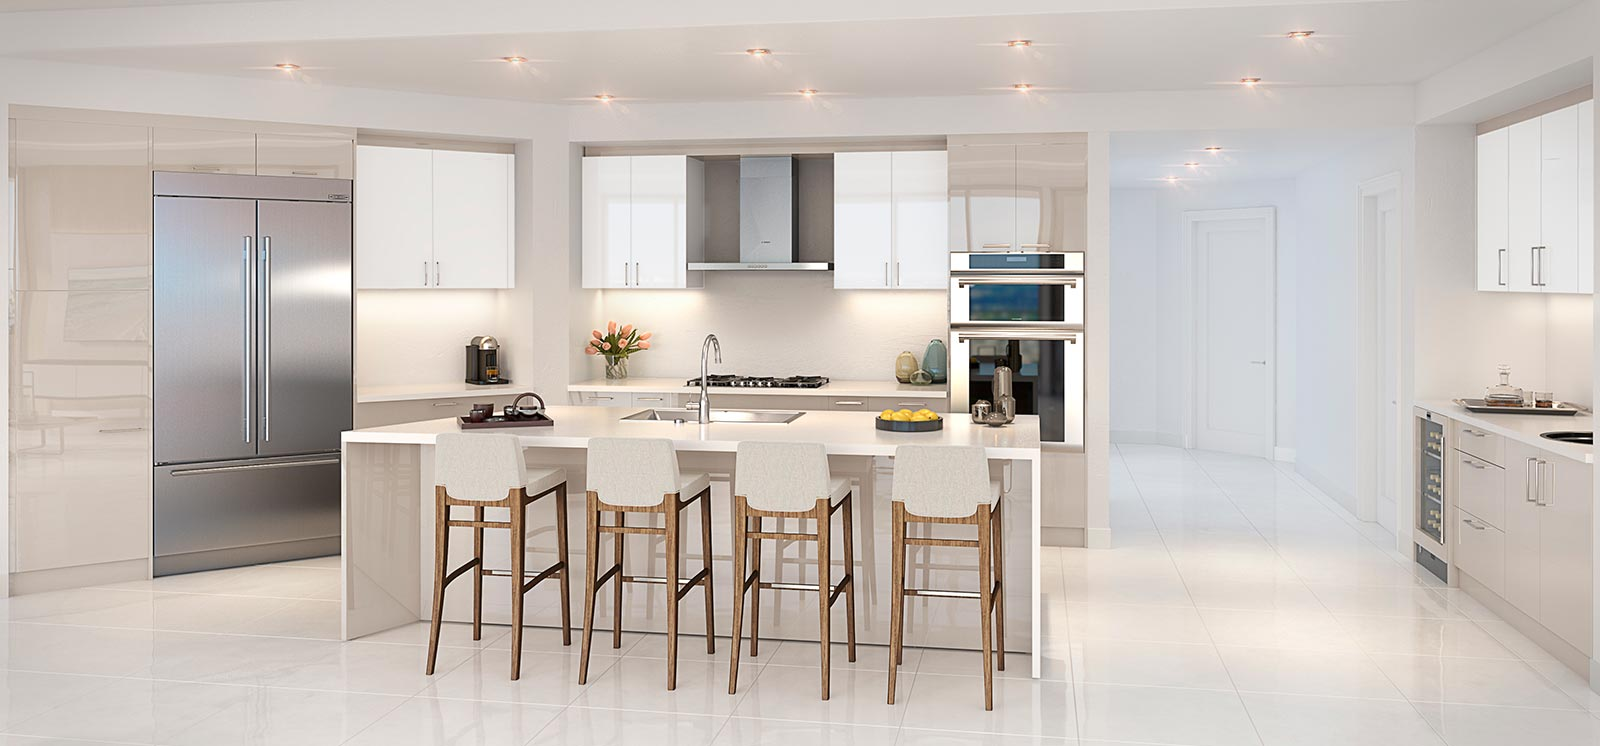 100 Las Olas Kitchen Rendering Allure